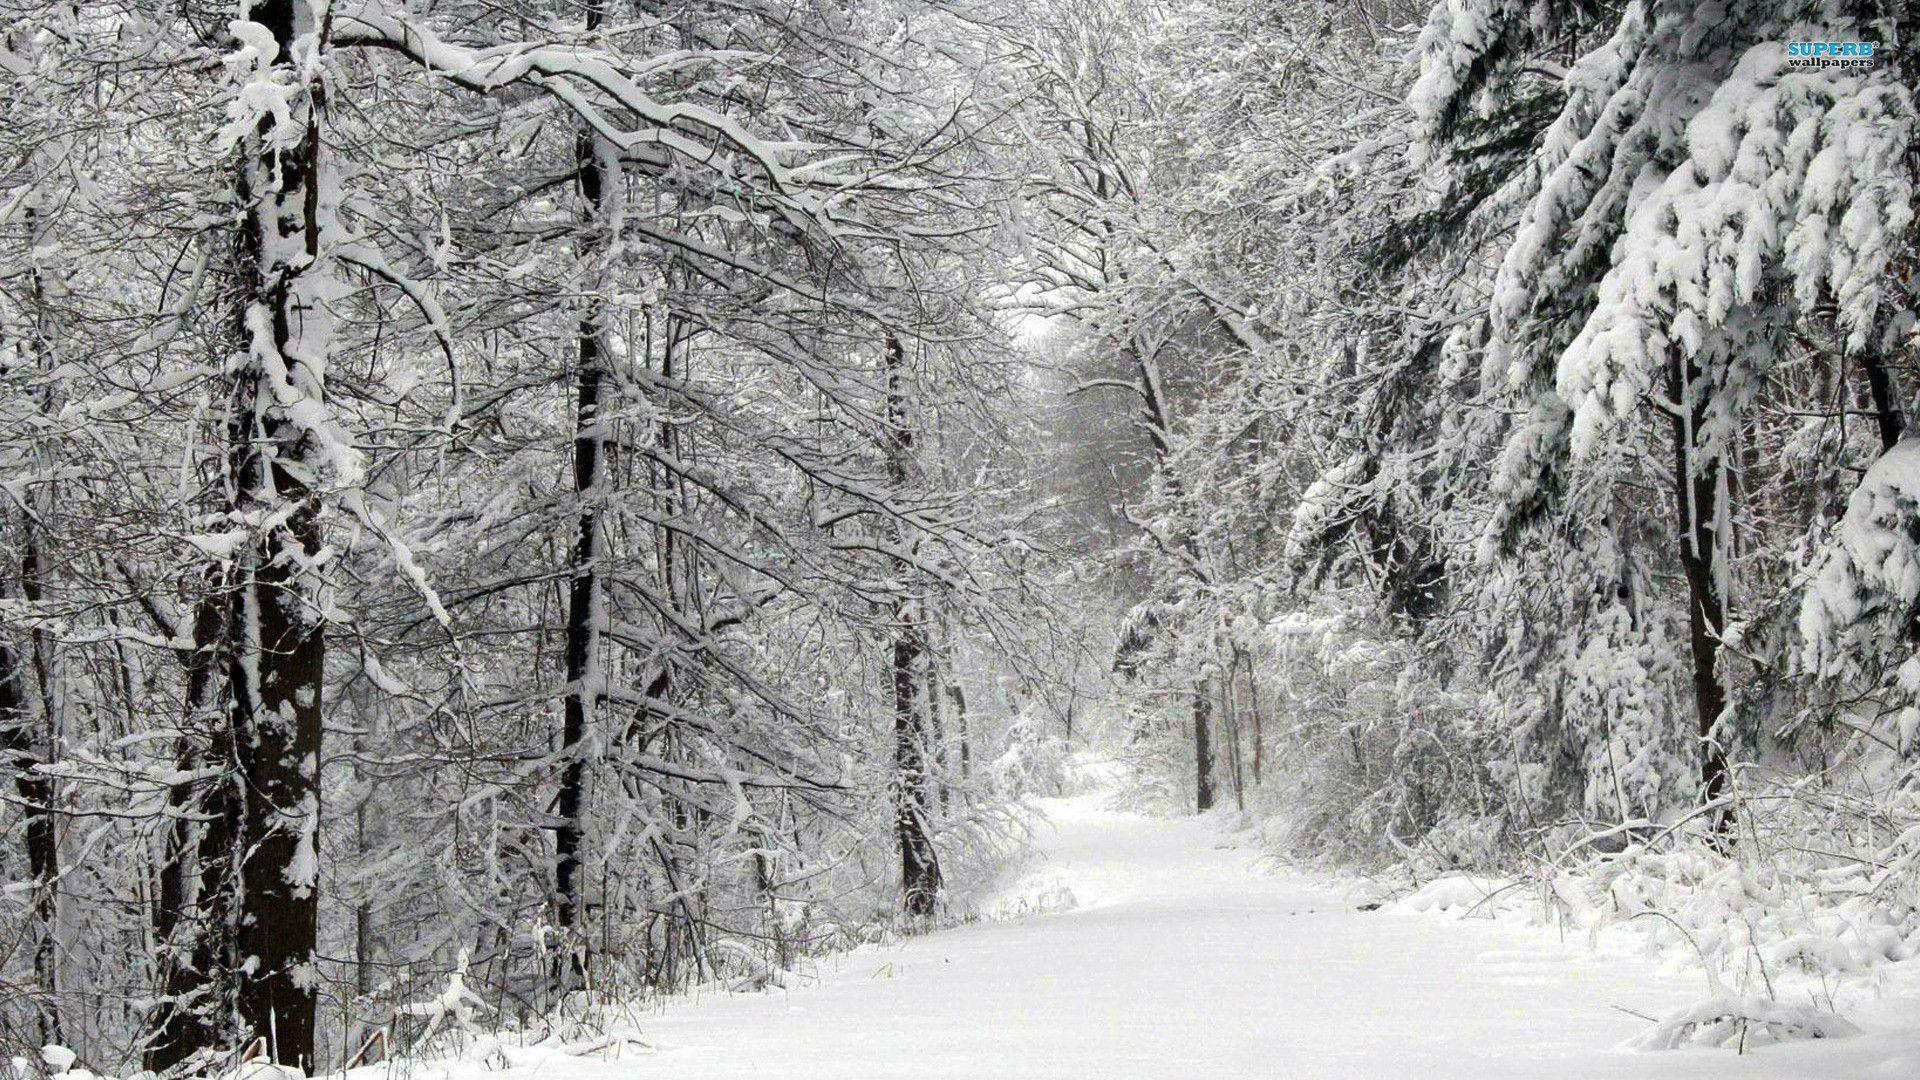 snowy forest white tree branches winter themed snow forest wallpapers wallpaper cave 255